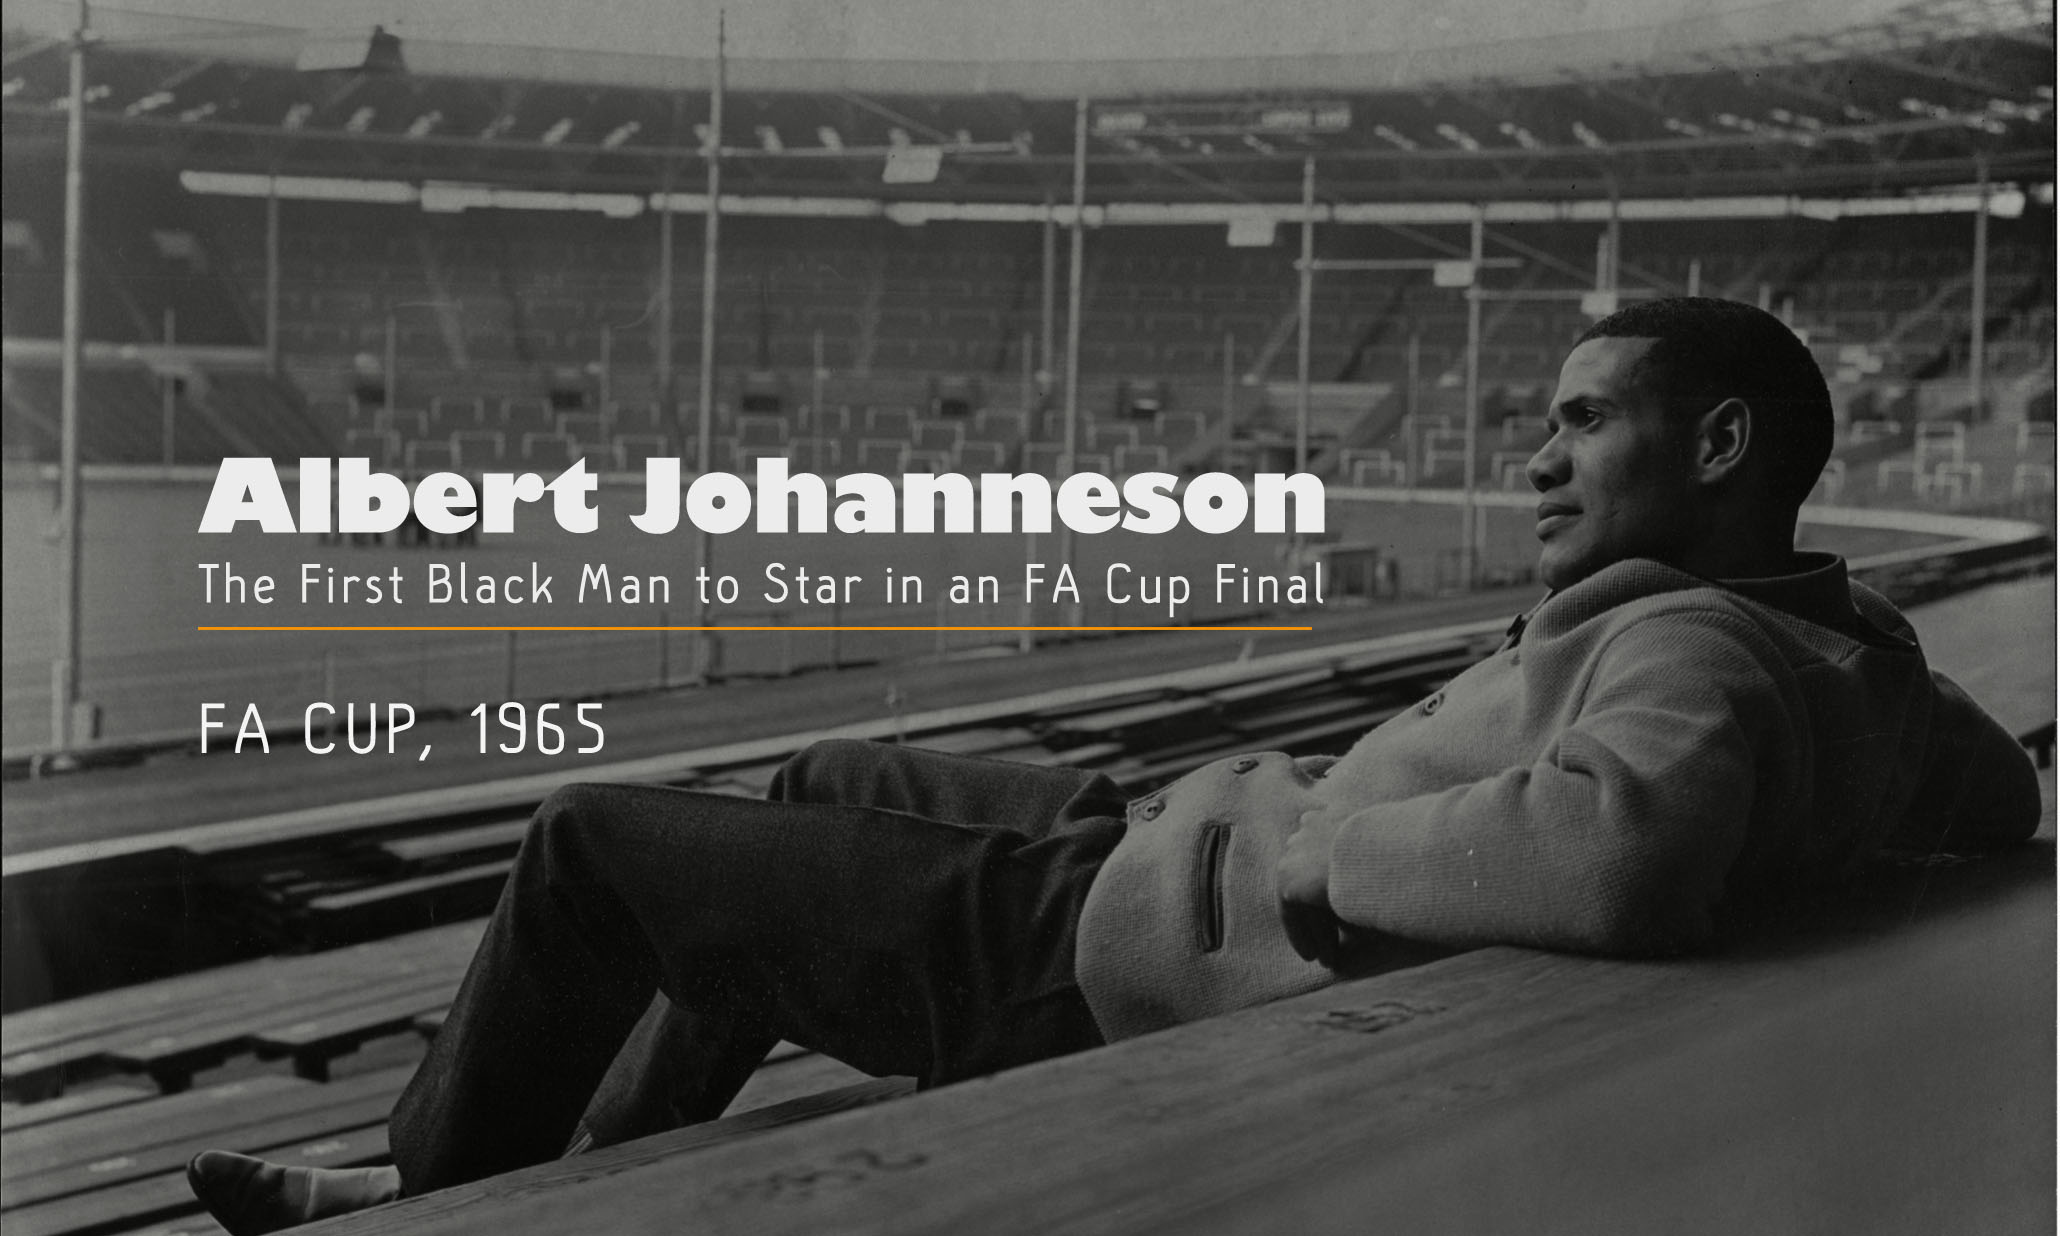 Albert Johanneson: The First Black Man to Star in an FA Cup Final